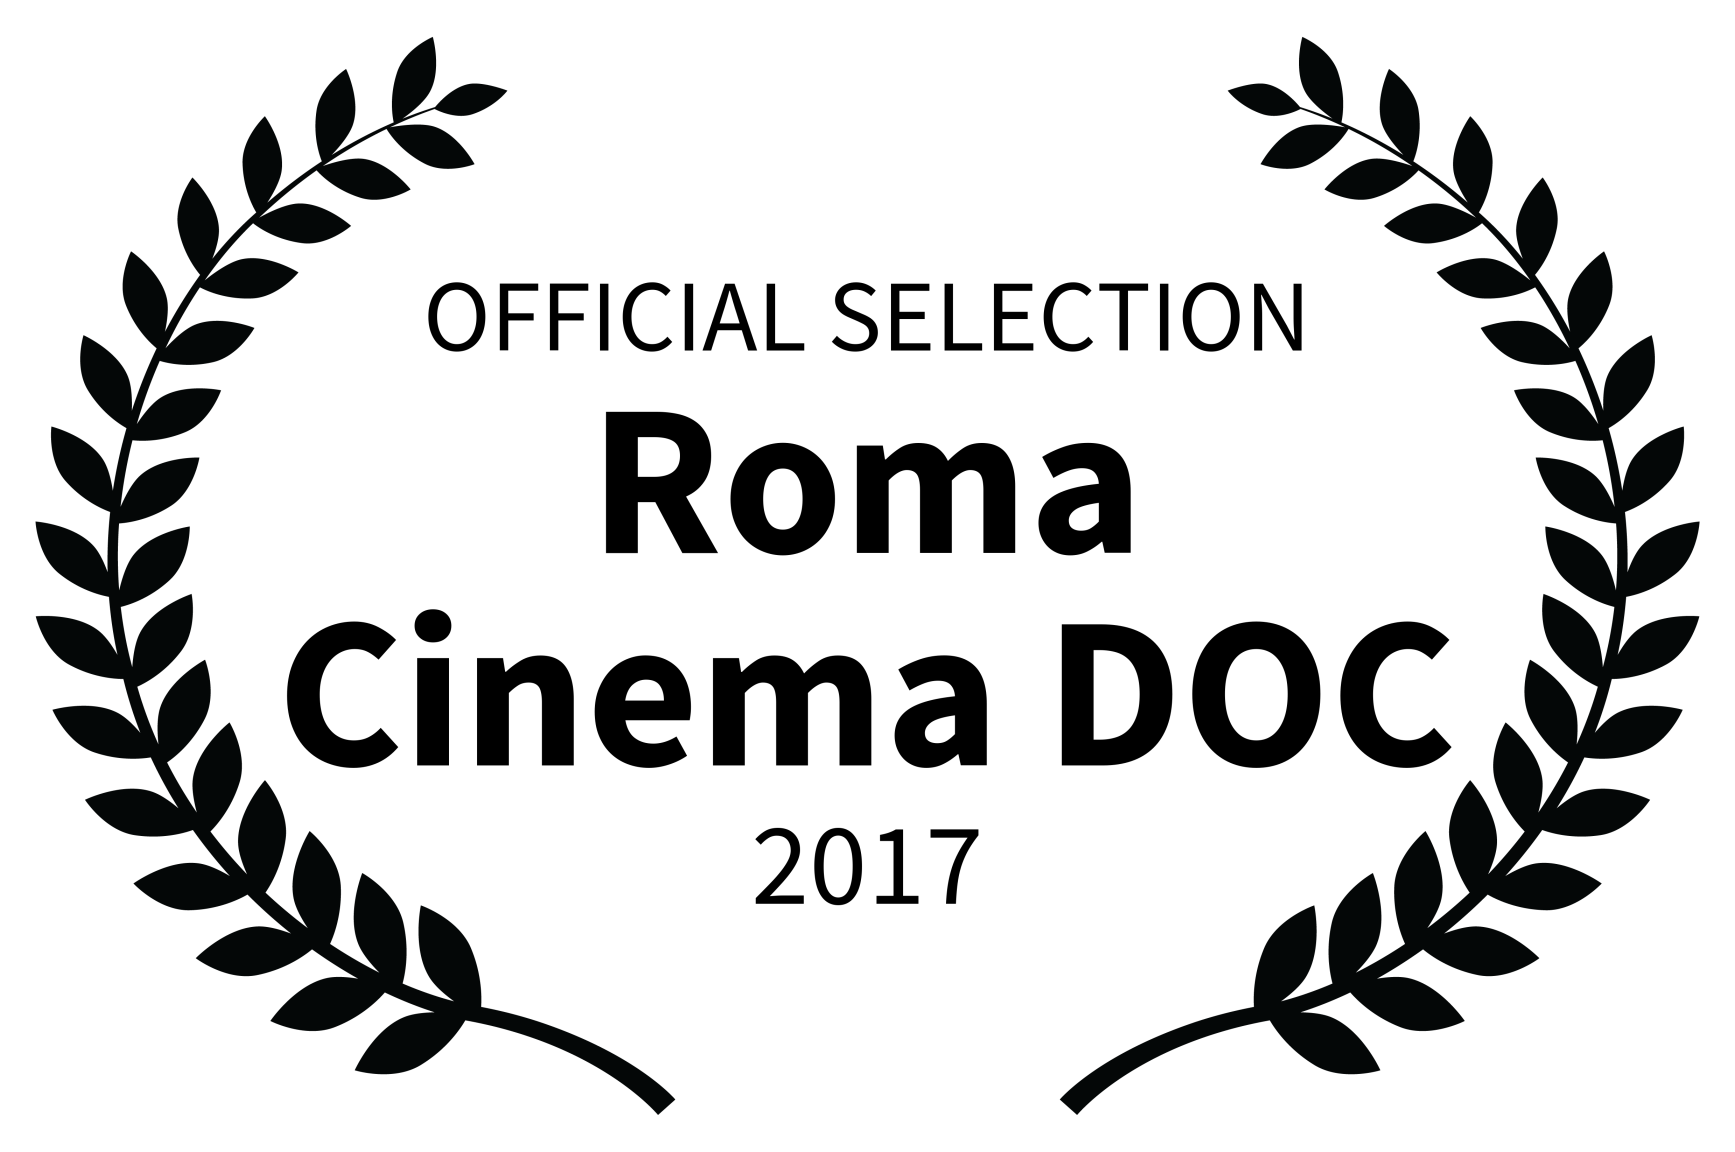 OFFICIAL SELECTION - Roma Cinema DOC - 2017